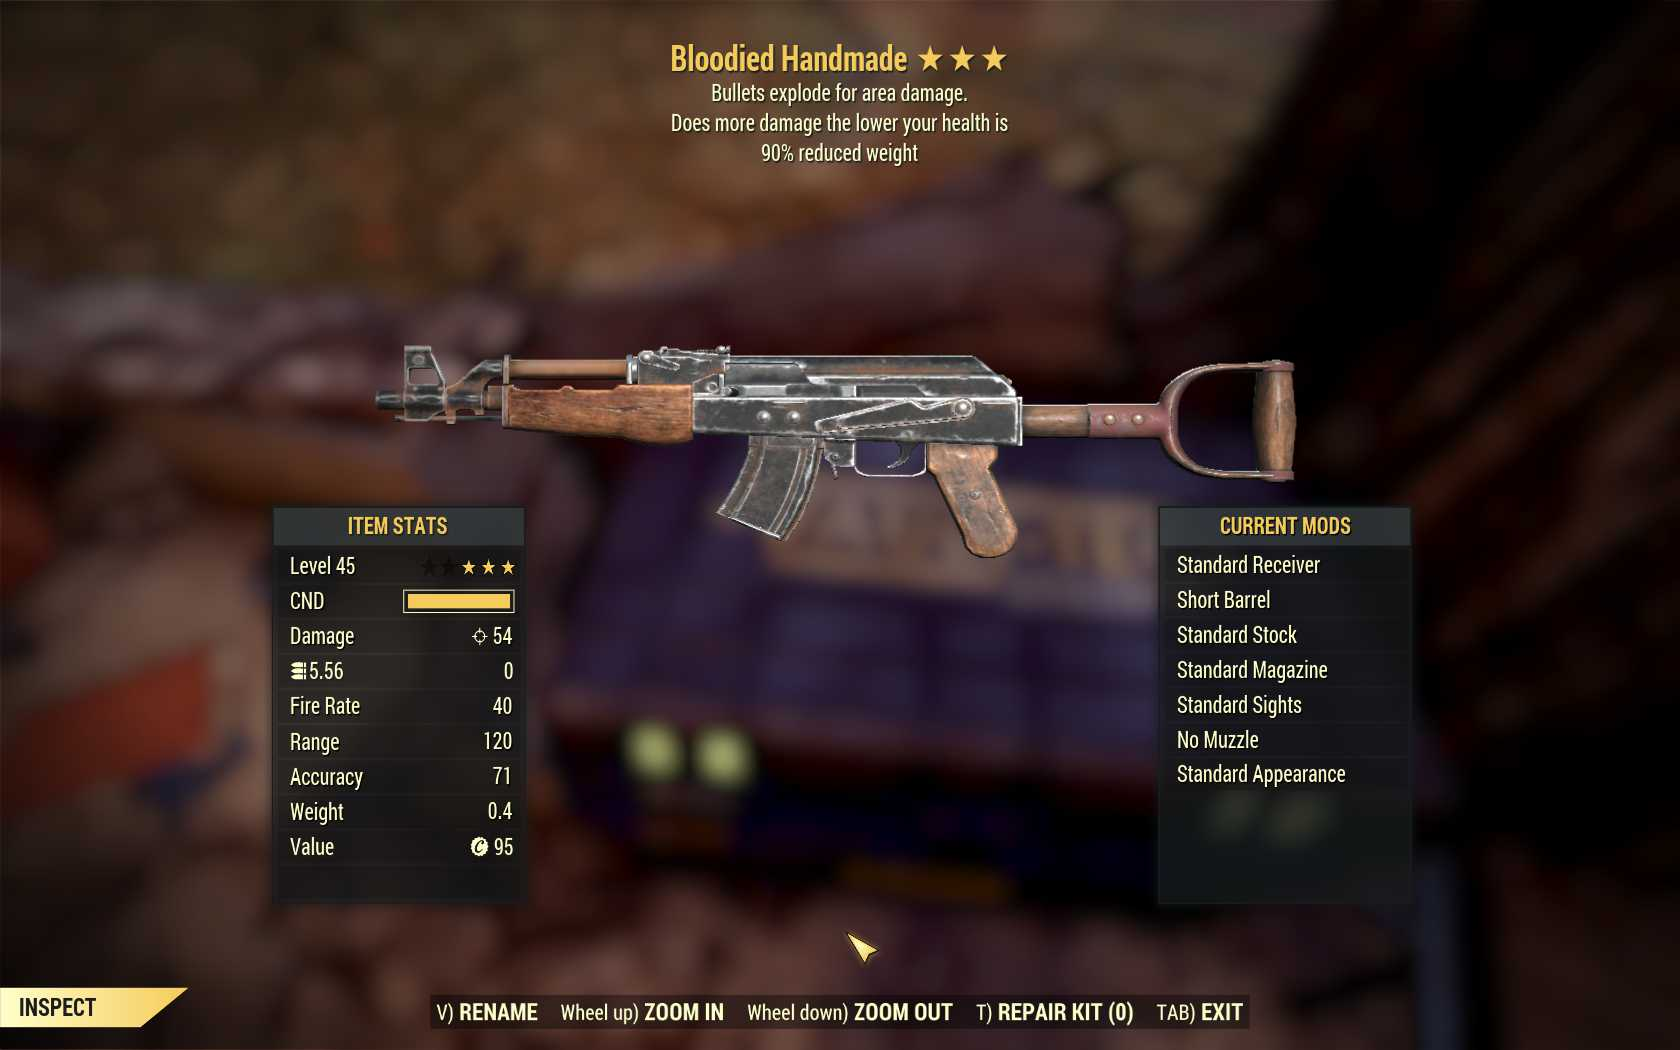 [PC] Bloodied Handmade Explosive [90WR]